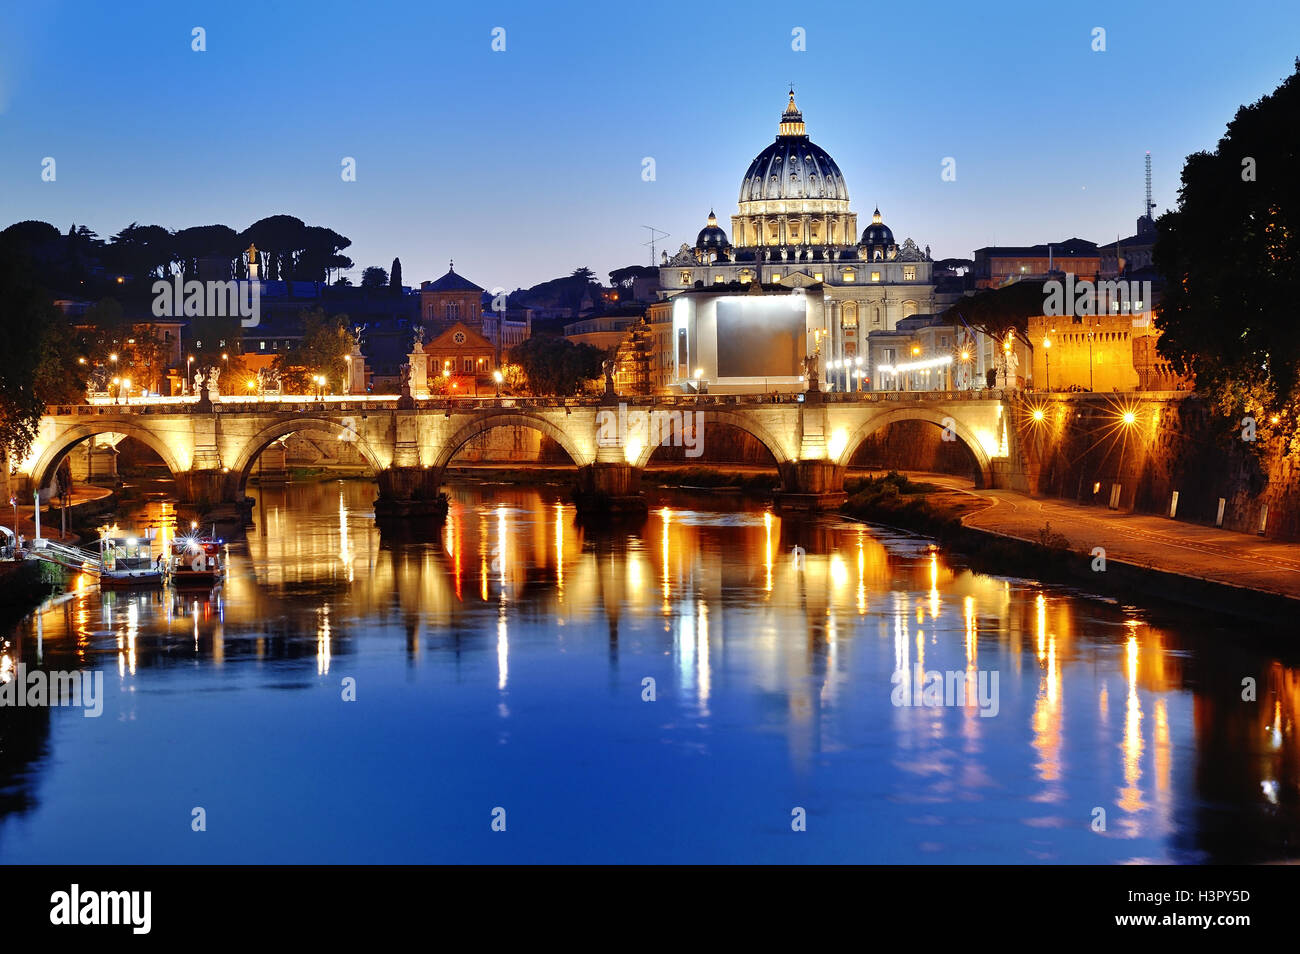 Rome, Italy - scenic view of the Tiber river and St. Peter's Basilica at night - Stock Image